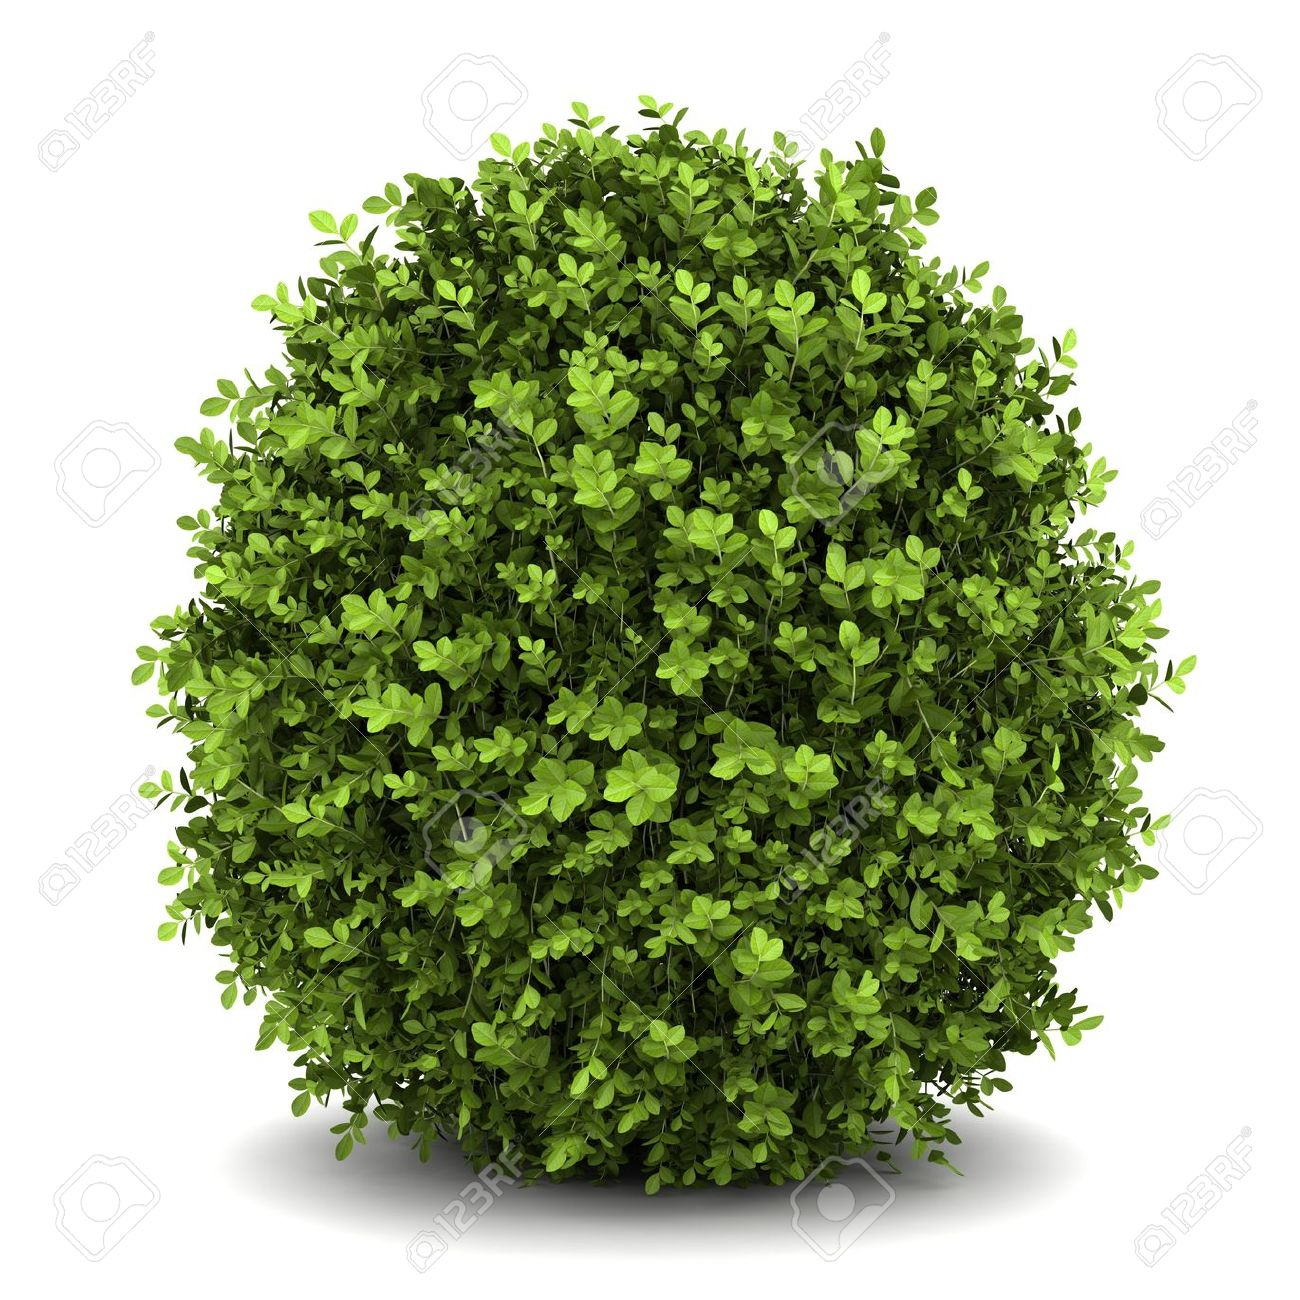 Dwarf Shrubs Images & Stock Pictures. Royalty Free Dwarf Shrubs.